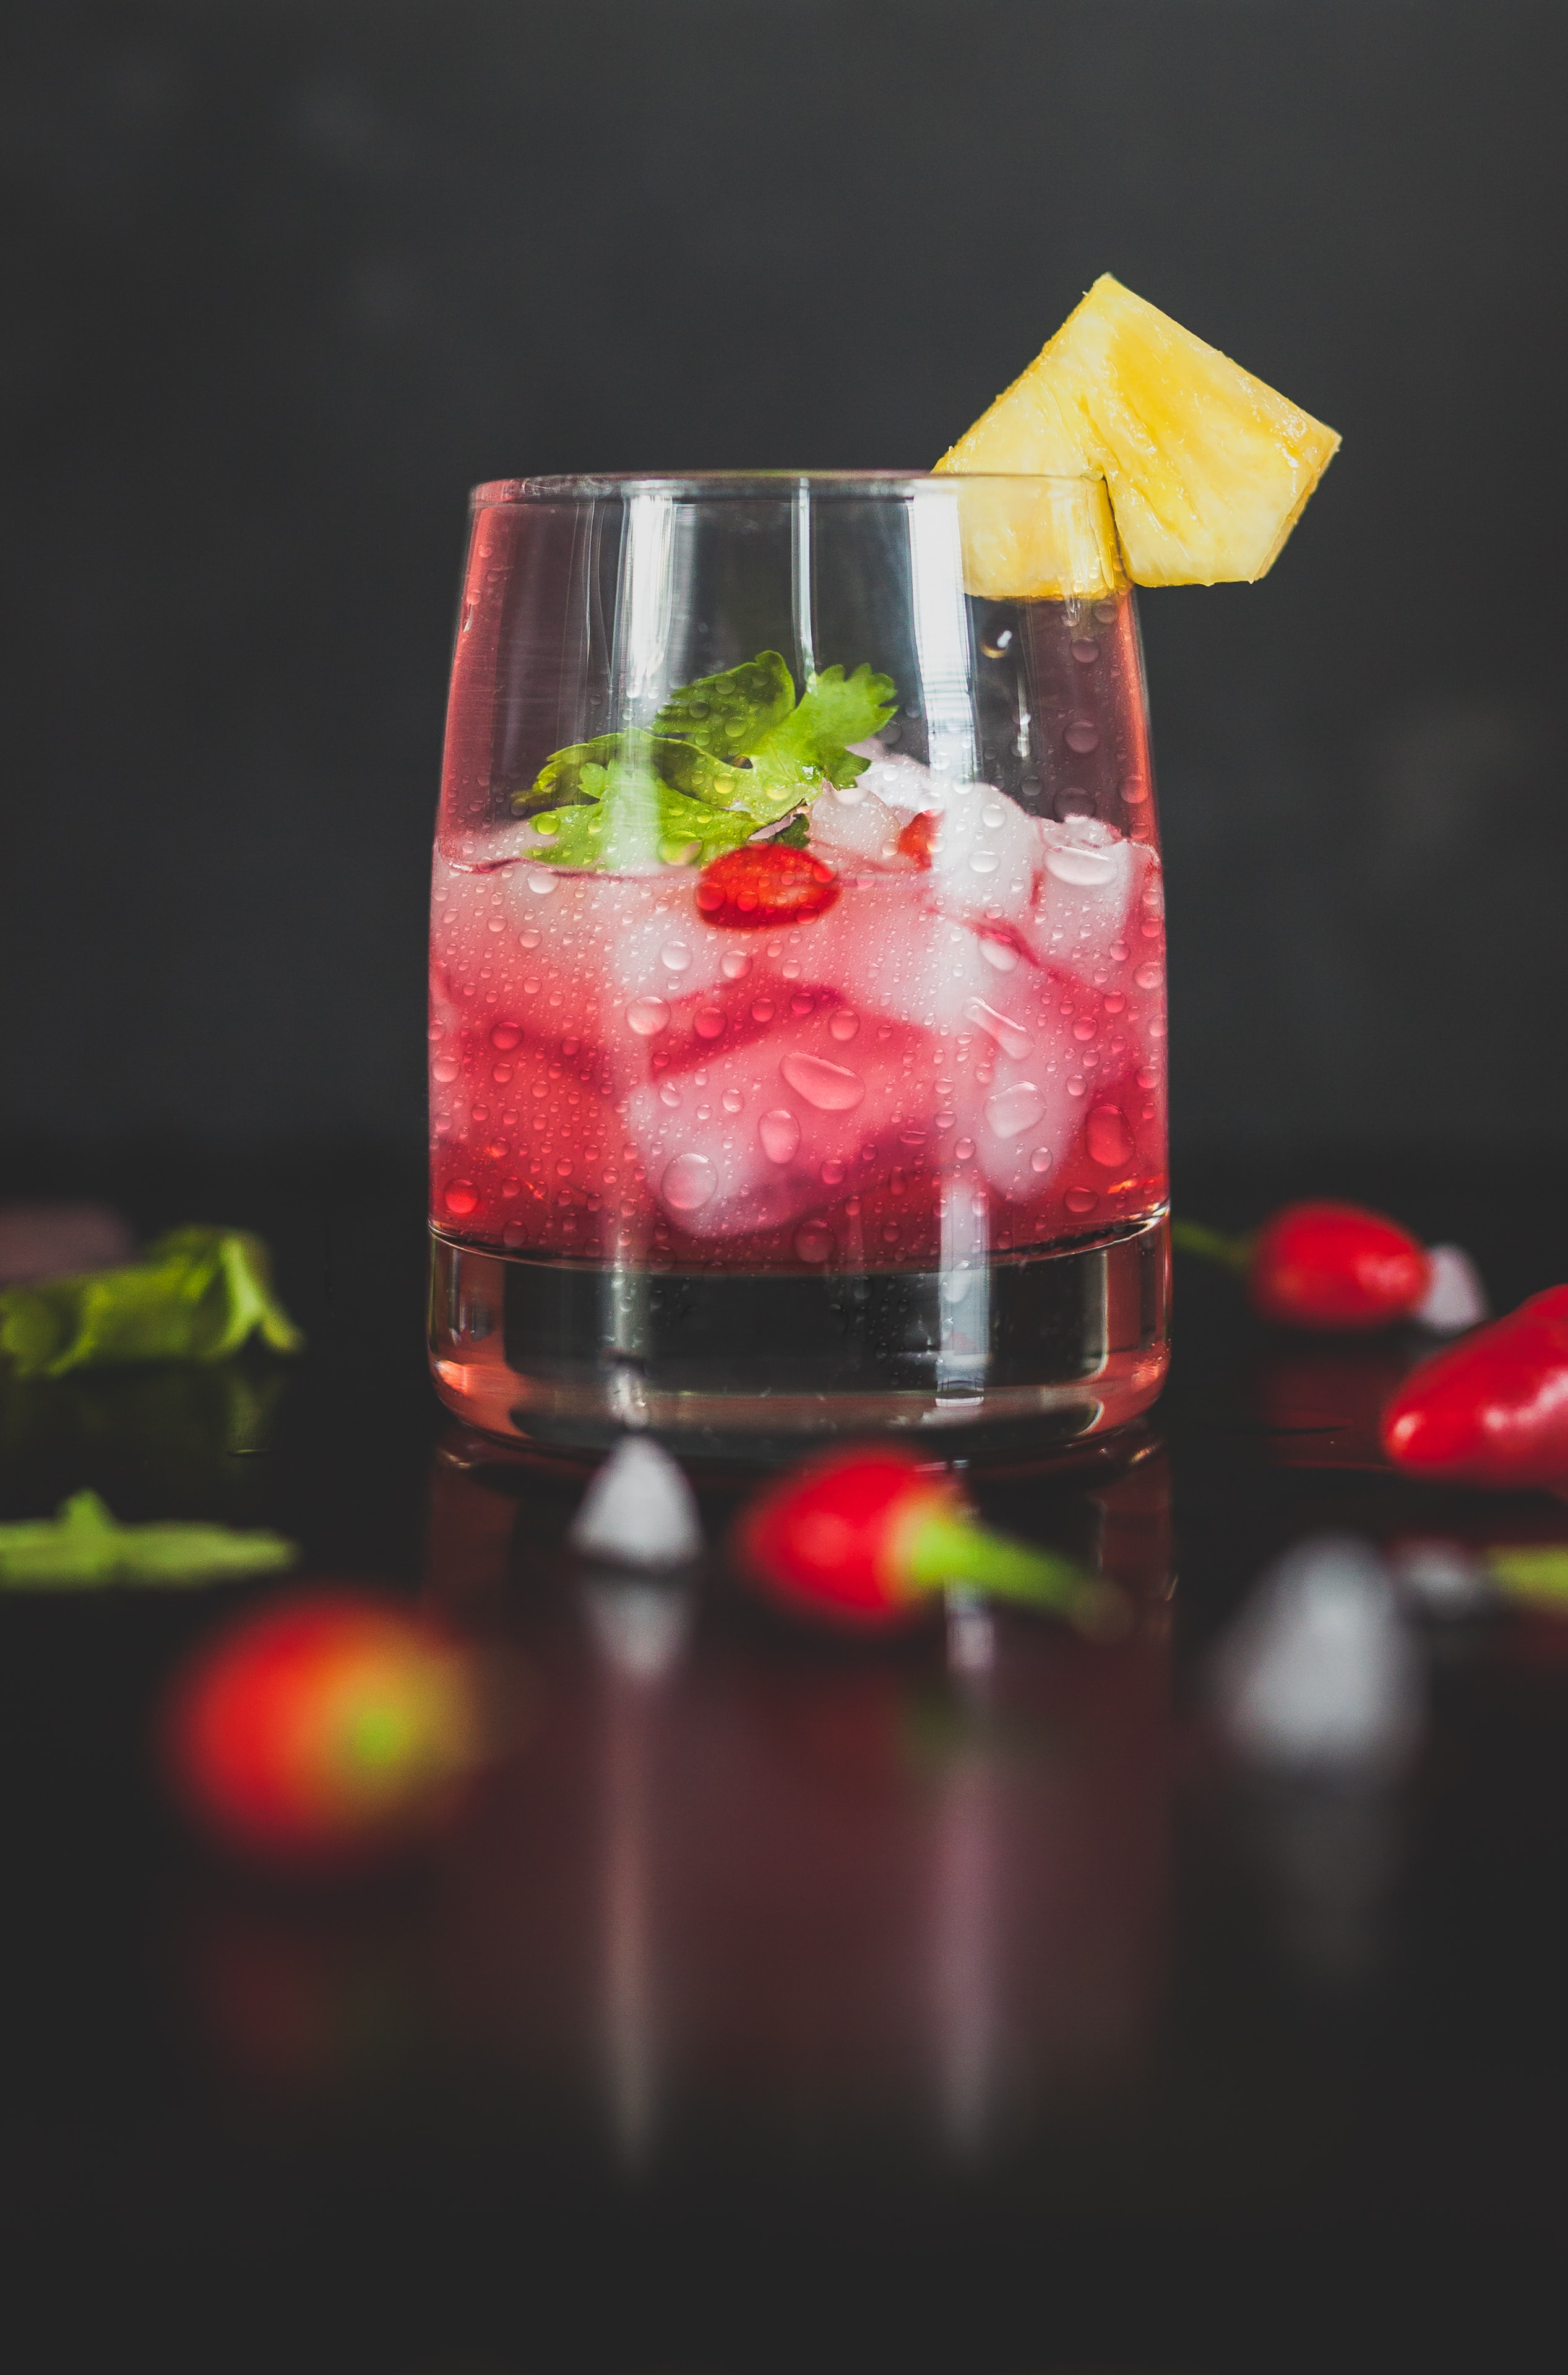 Macro view of cocktail drink in a glass with ice garnished with pepper, leaf and fruits